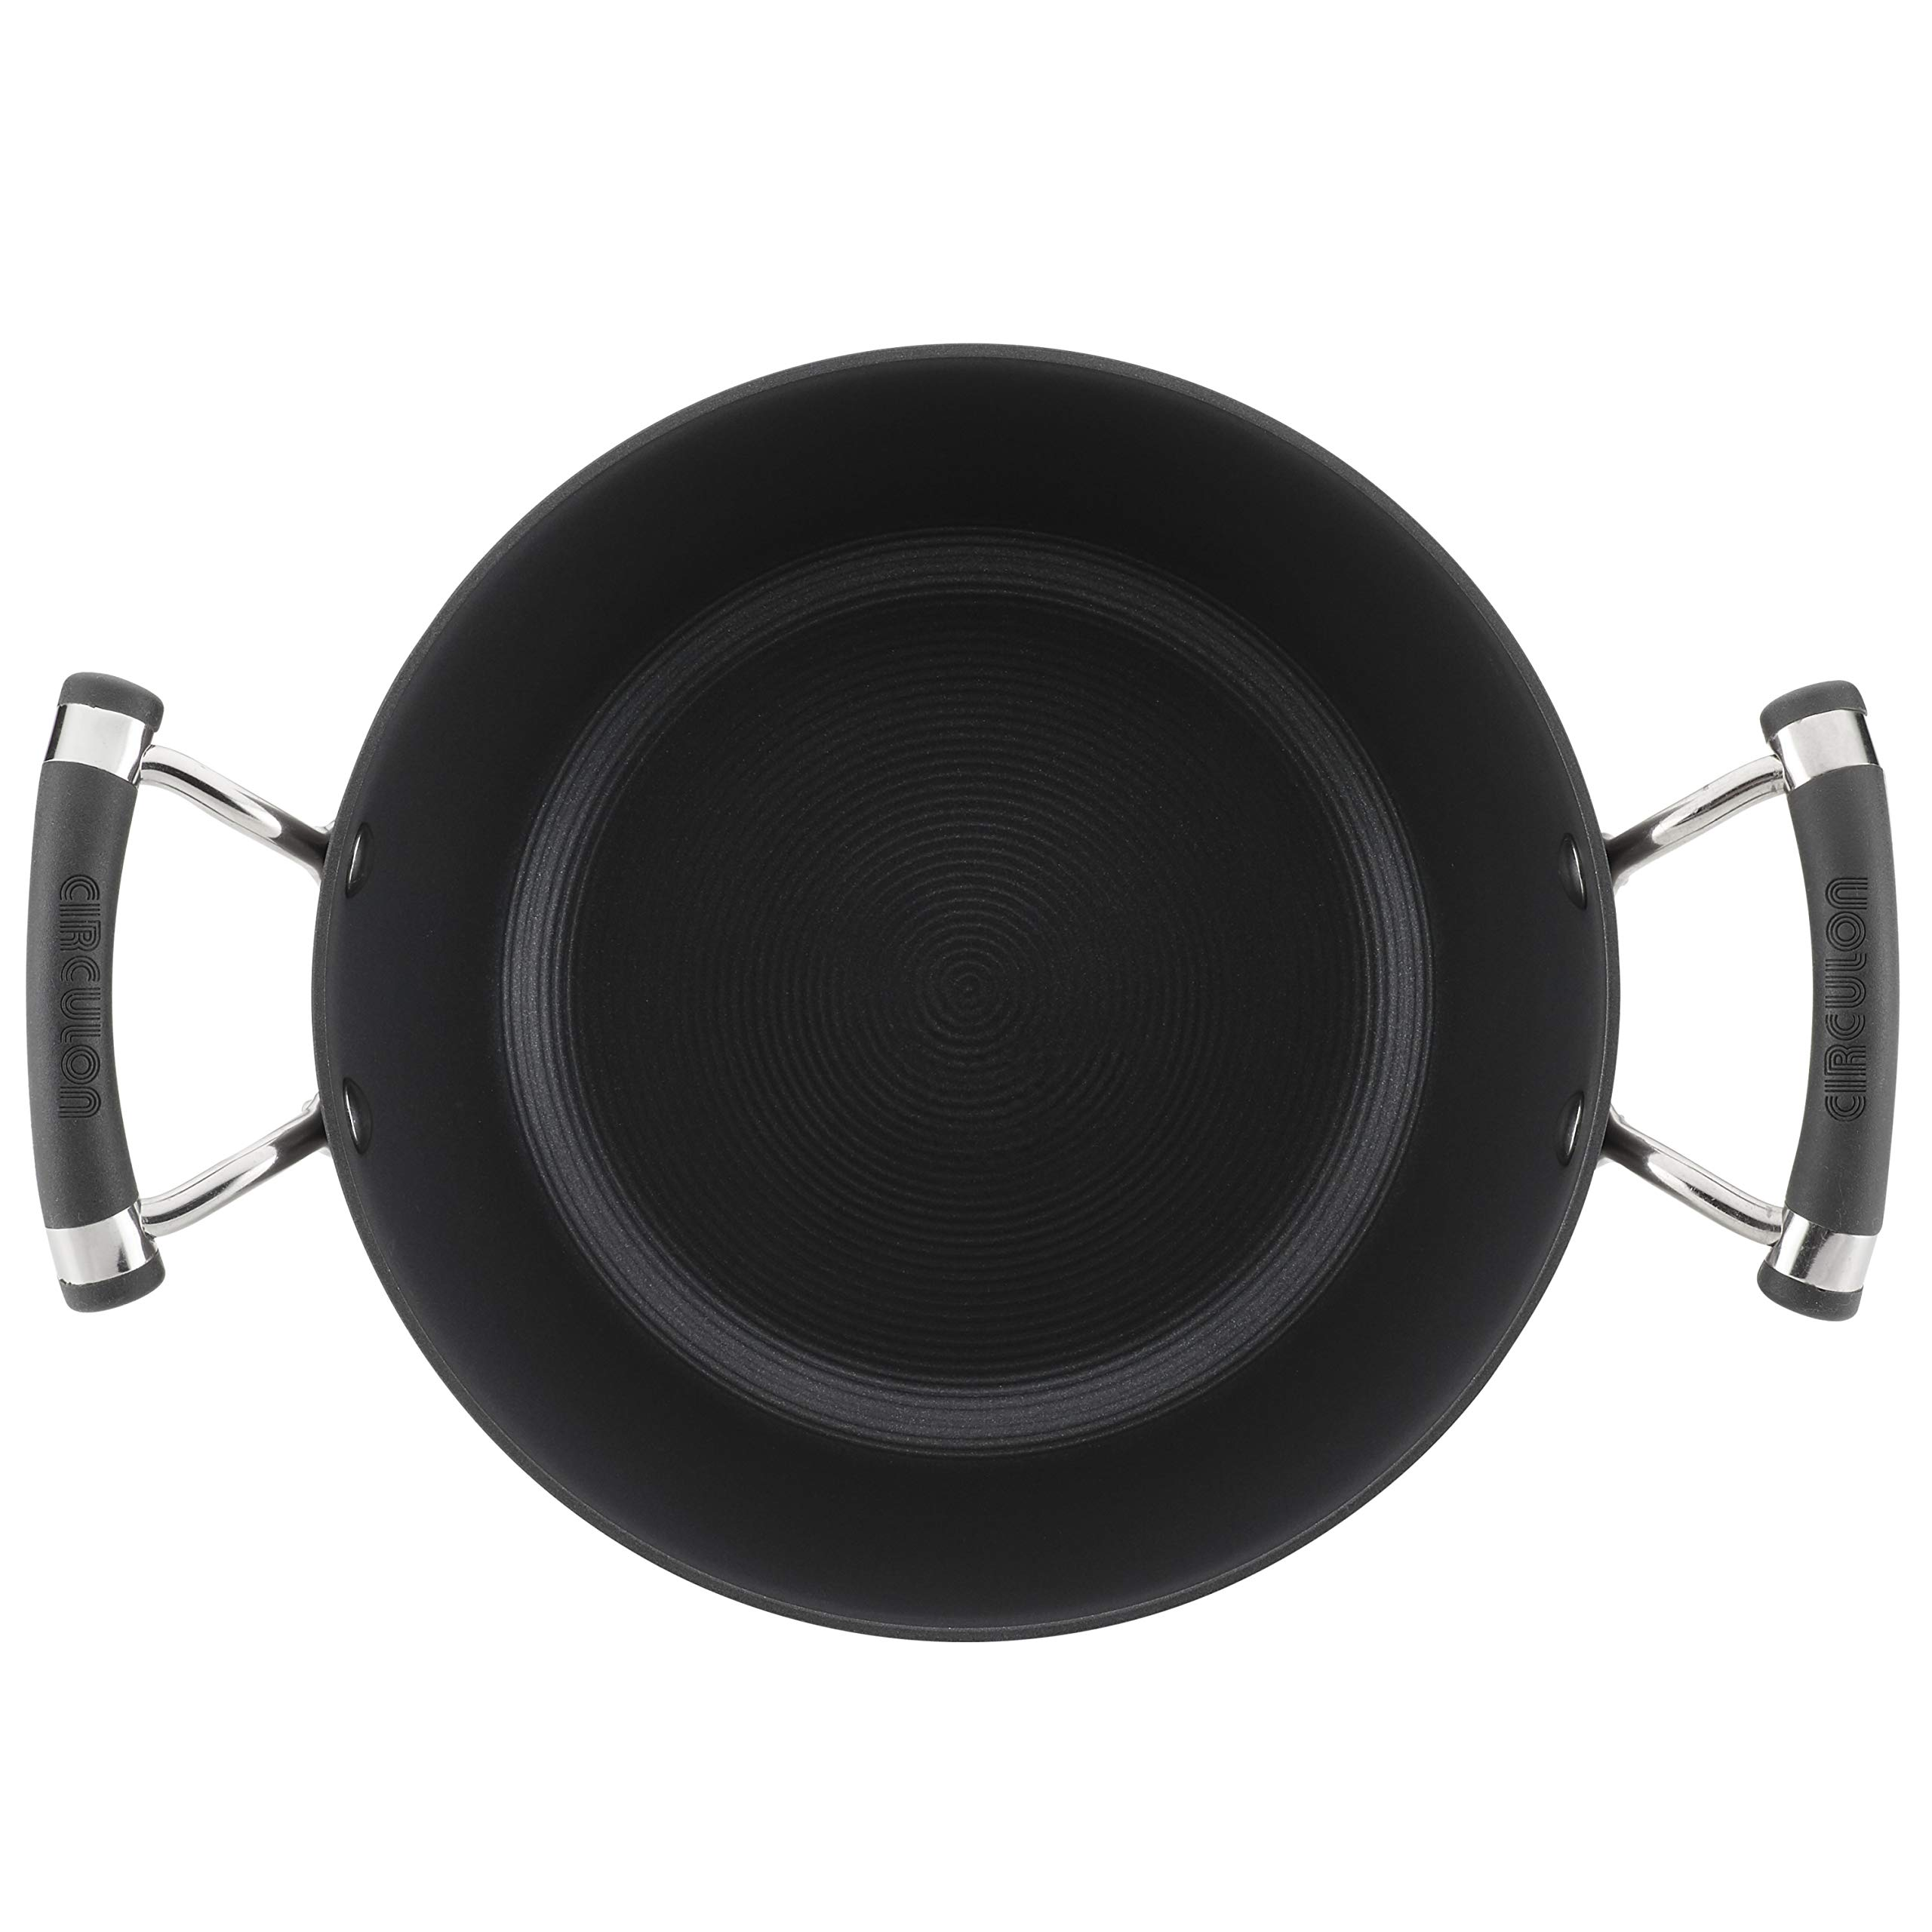 Circulon Acclaim Hard-Anodized Nonstick 4.5-Quart Covered Casserole by Circulon (Image #2)